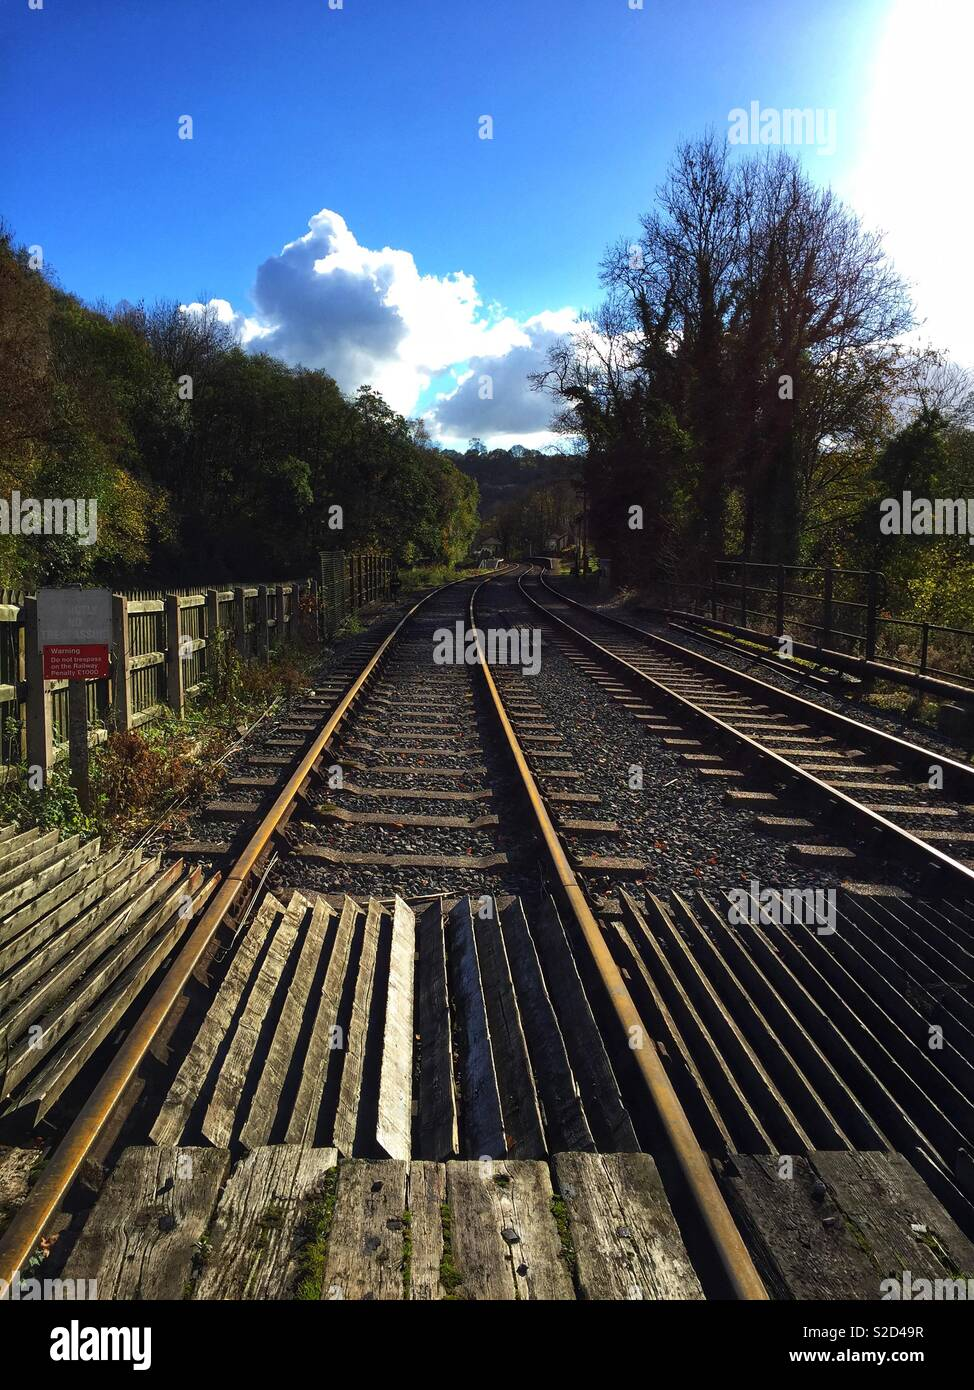 The Railway Track - Stock Image